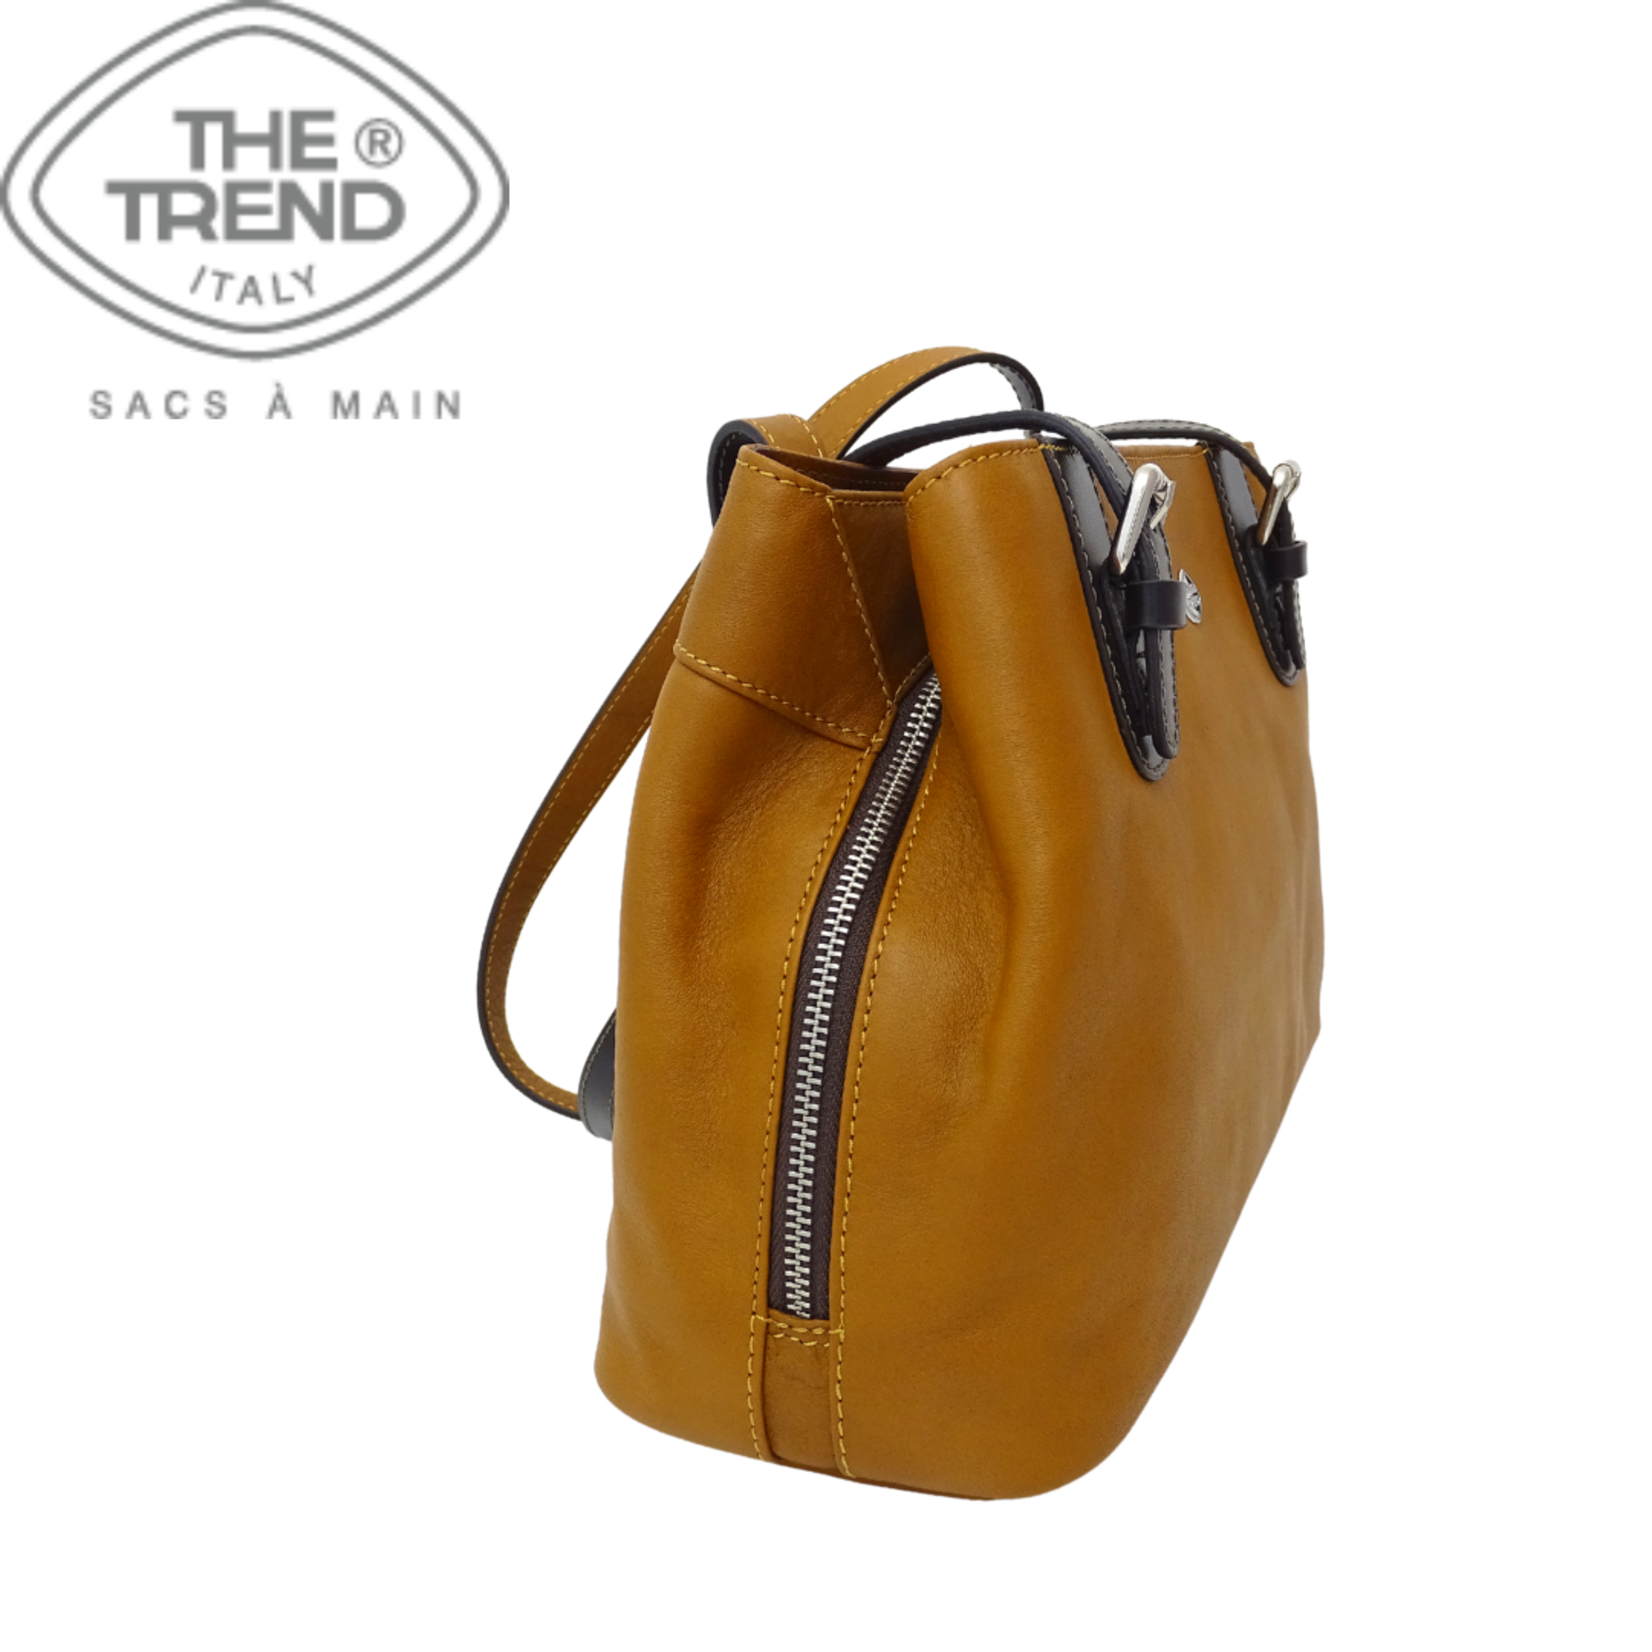 The Trend The Trend 584543 tan